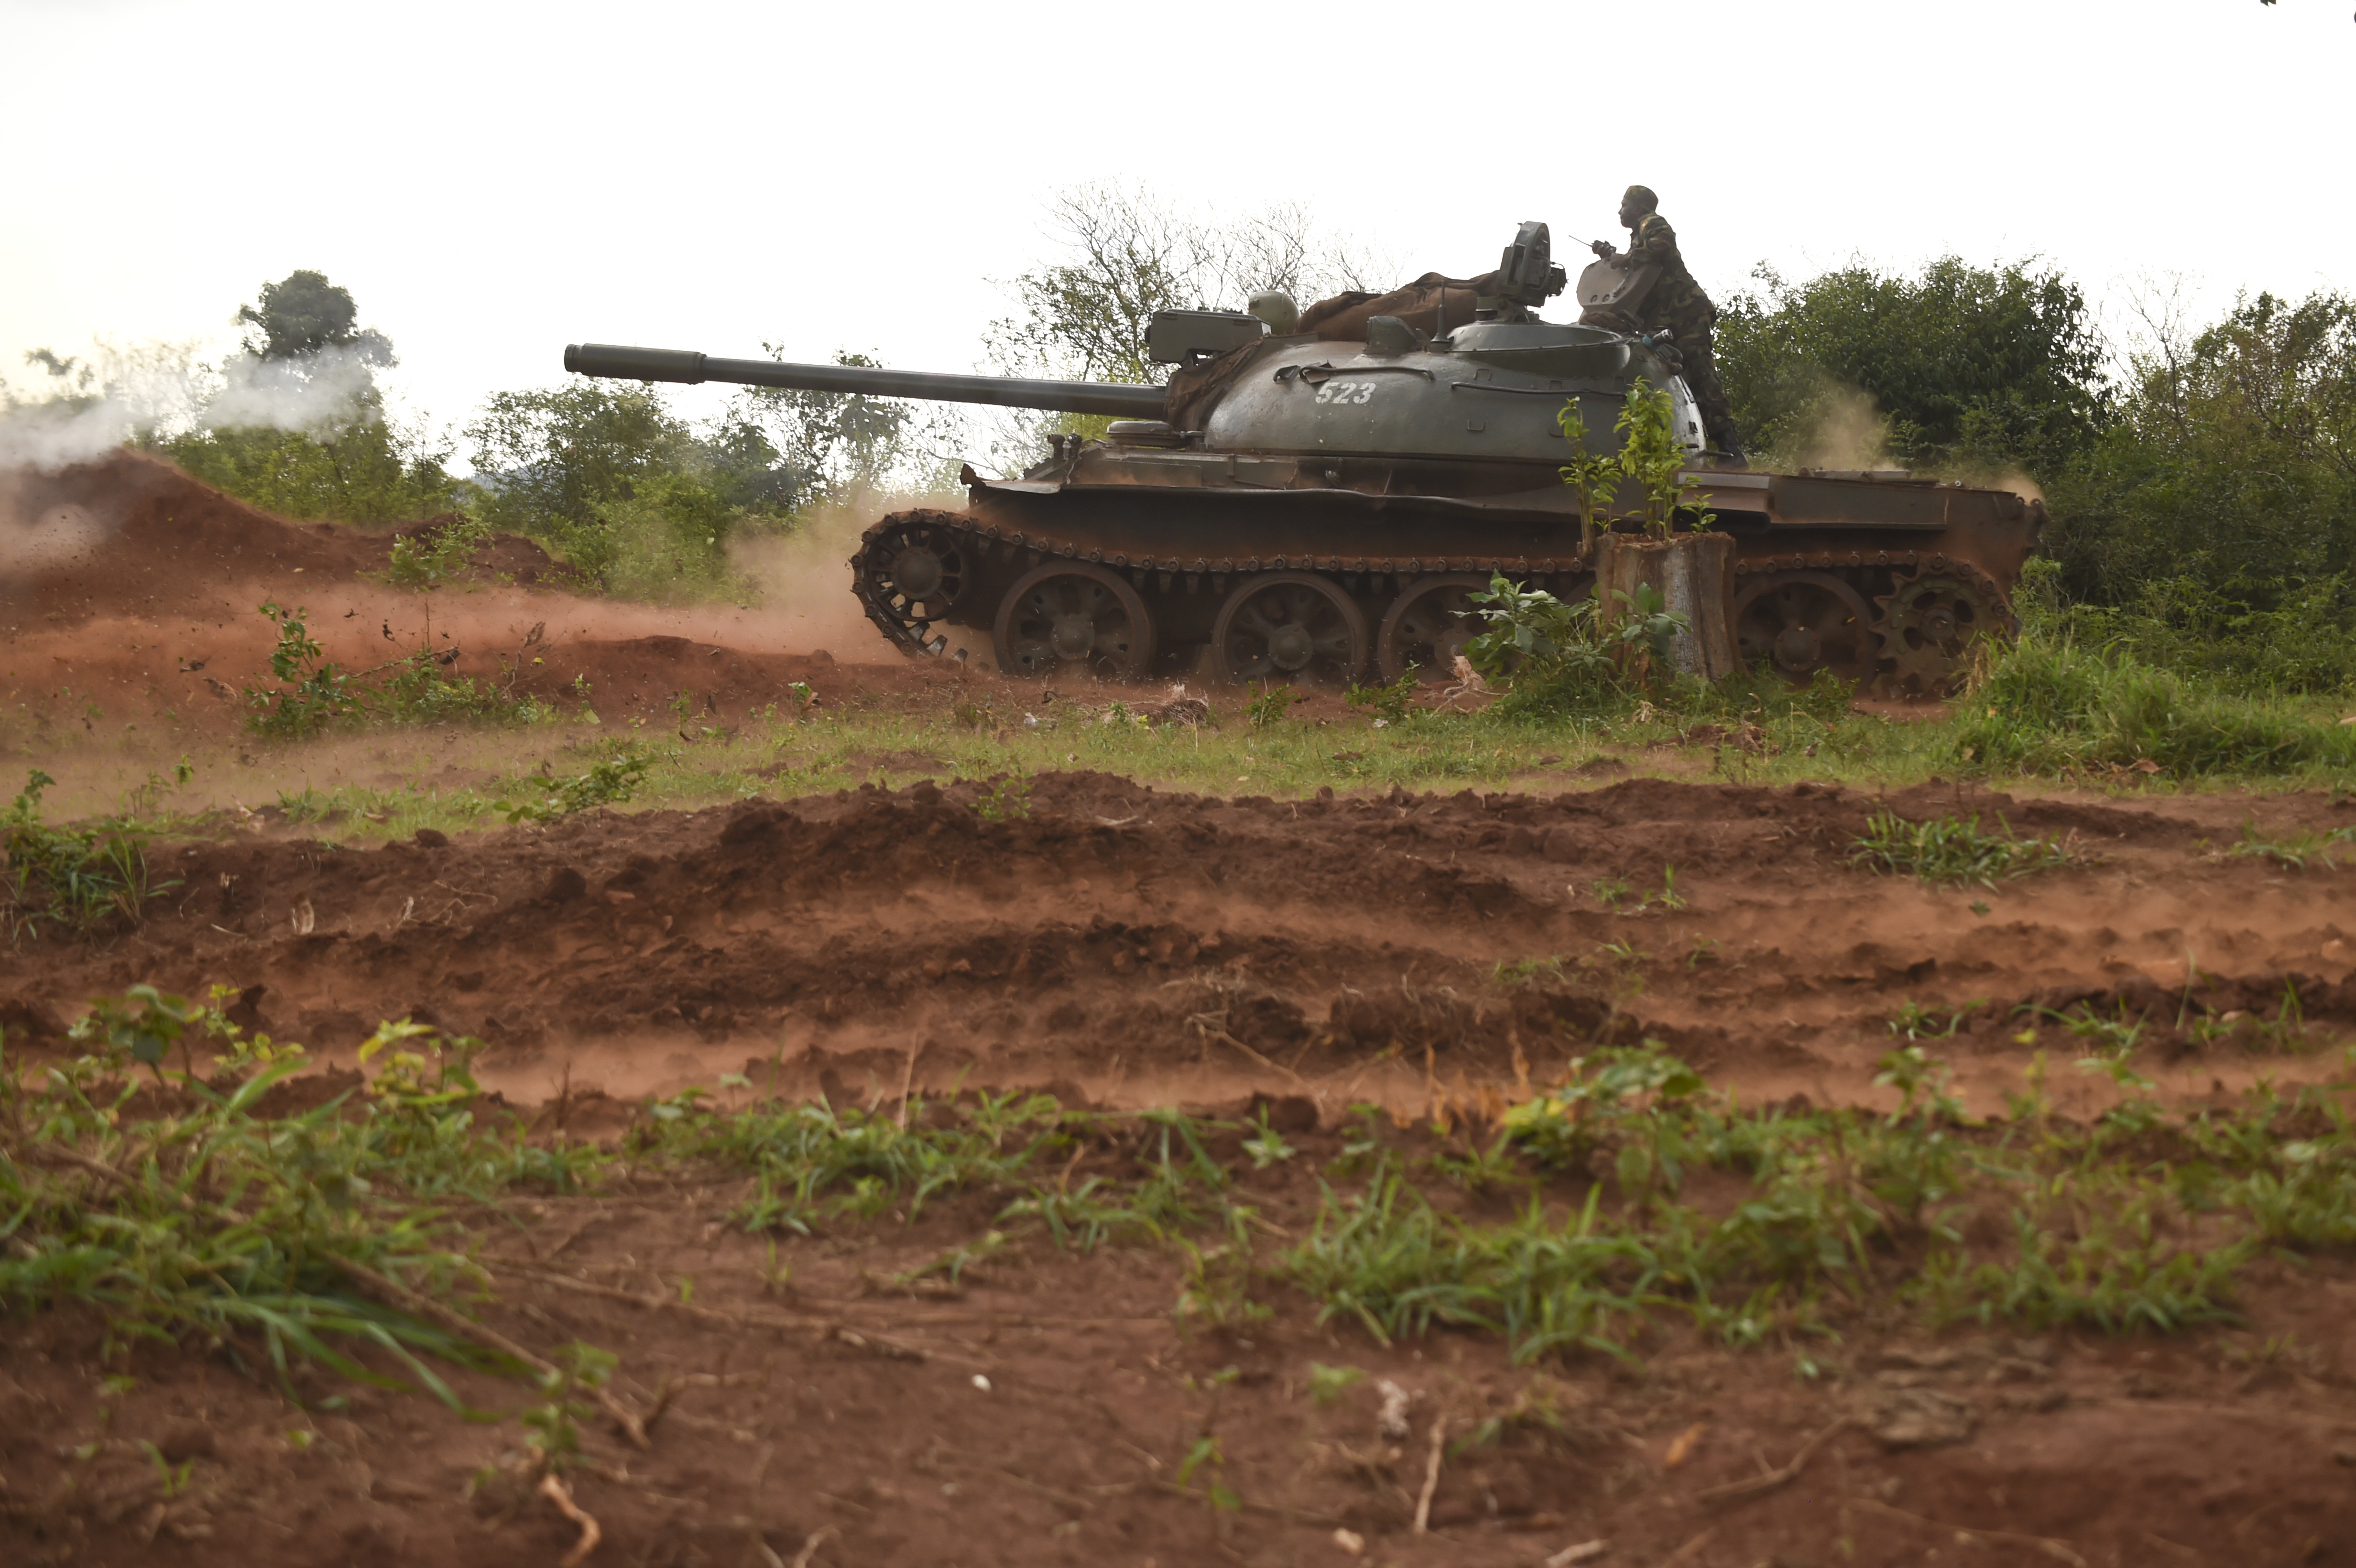 Uganda People's Defense Force soldiers, Ugandan Battle Group 22 (UGABAG 22), conduct tank fire during a live fire exercise at Camp Singo, Uganda, Feb. 27, 2017. The live fire is part of a 12-week pre-deployment training course for UGABAG 22.